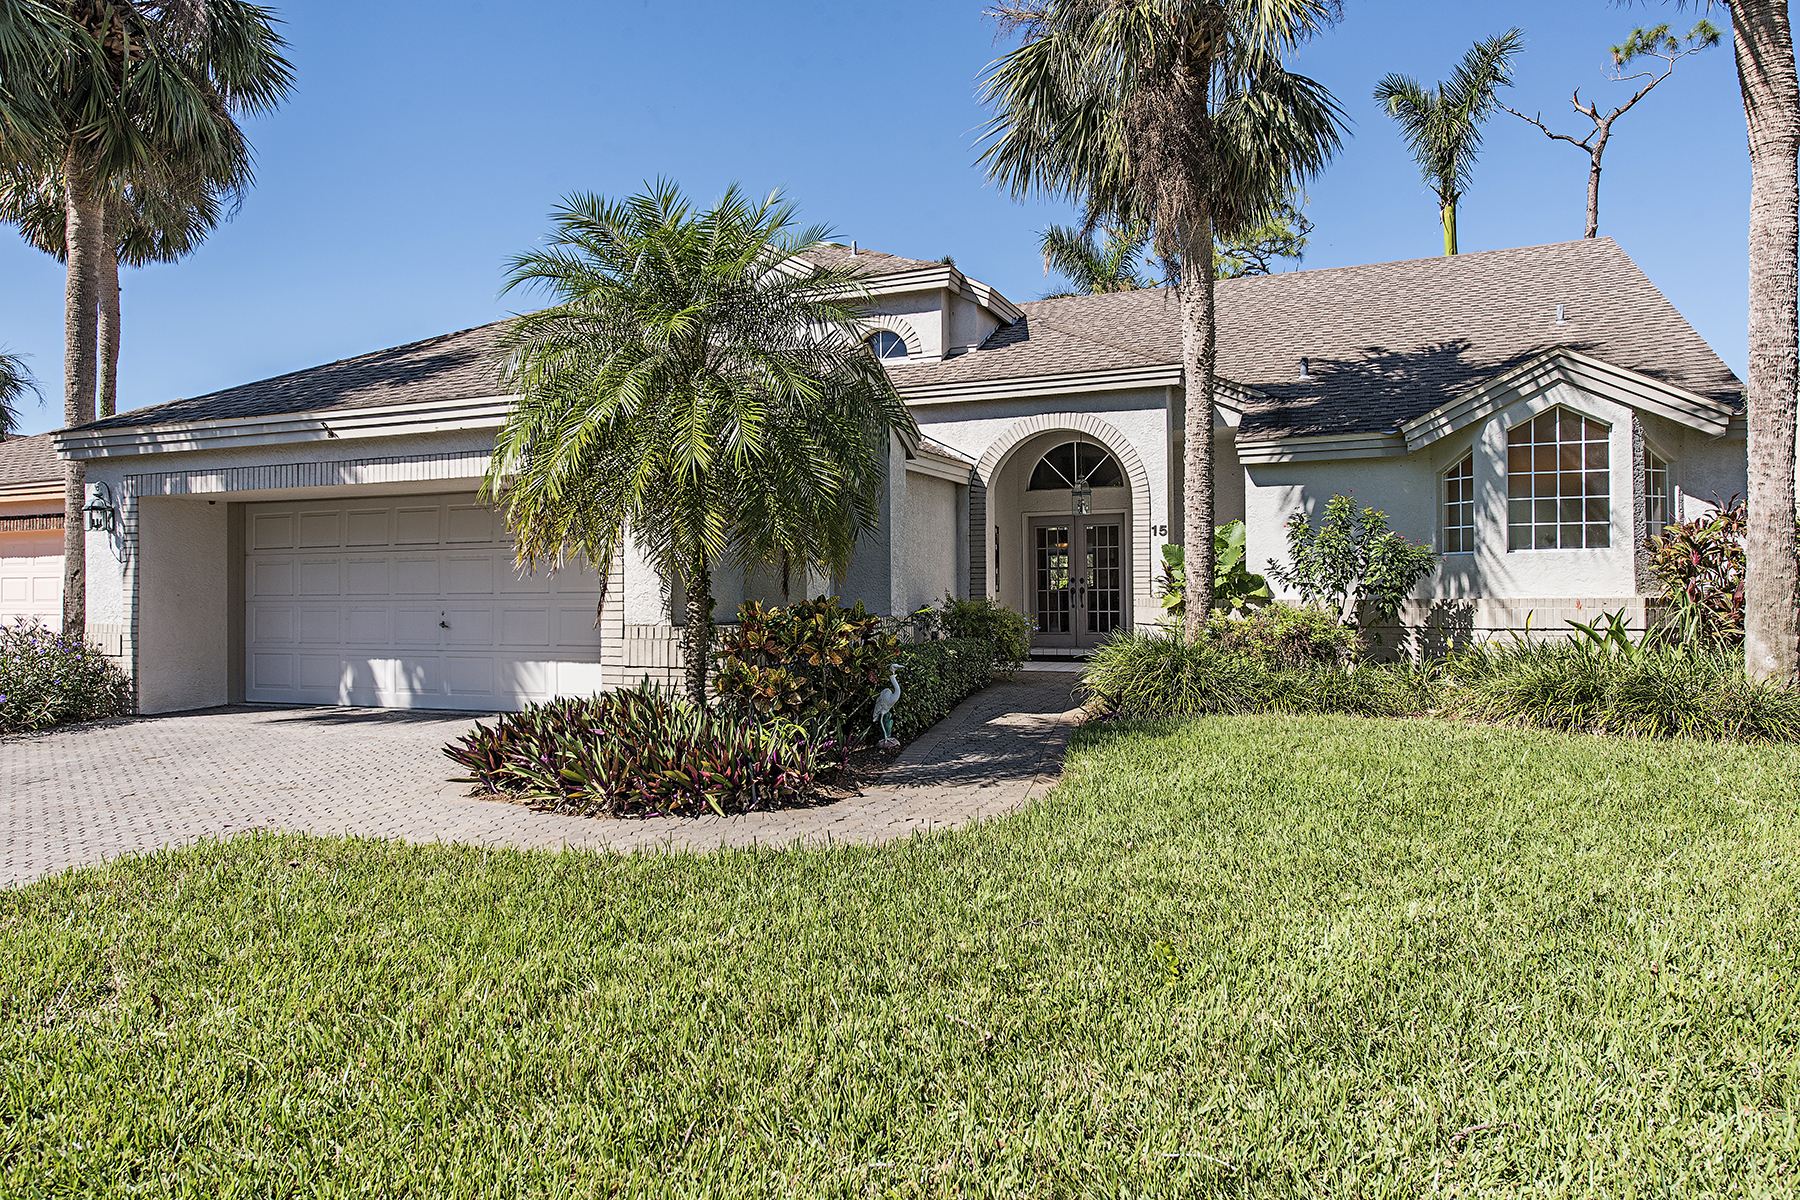 Single Family Home for Sale at EAGLE CREEK 15 Grey Wing Pt, Naples, Florida, 34113 United States